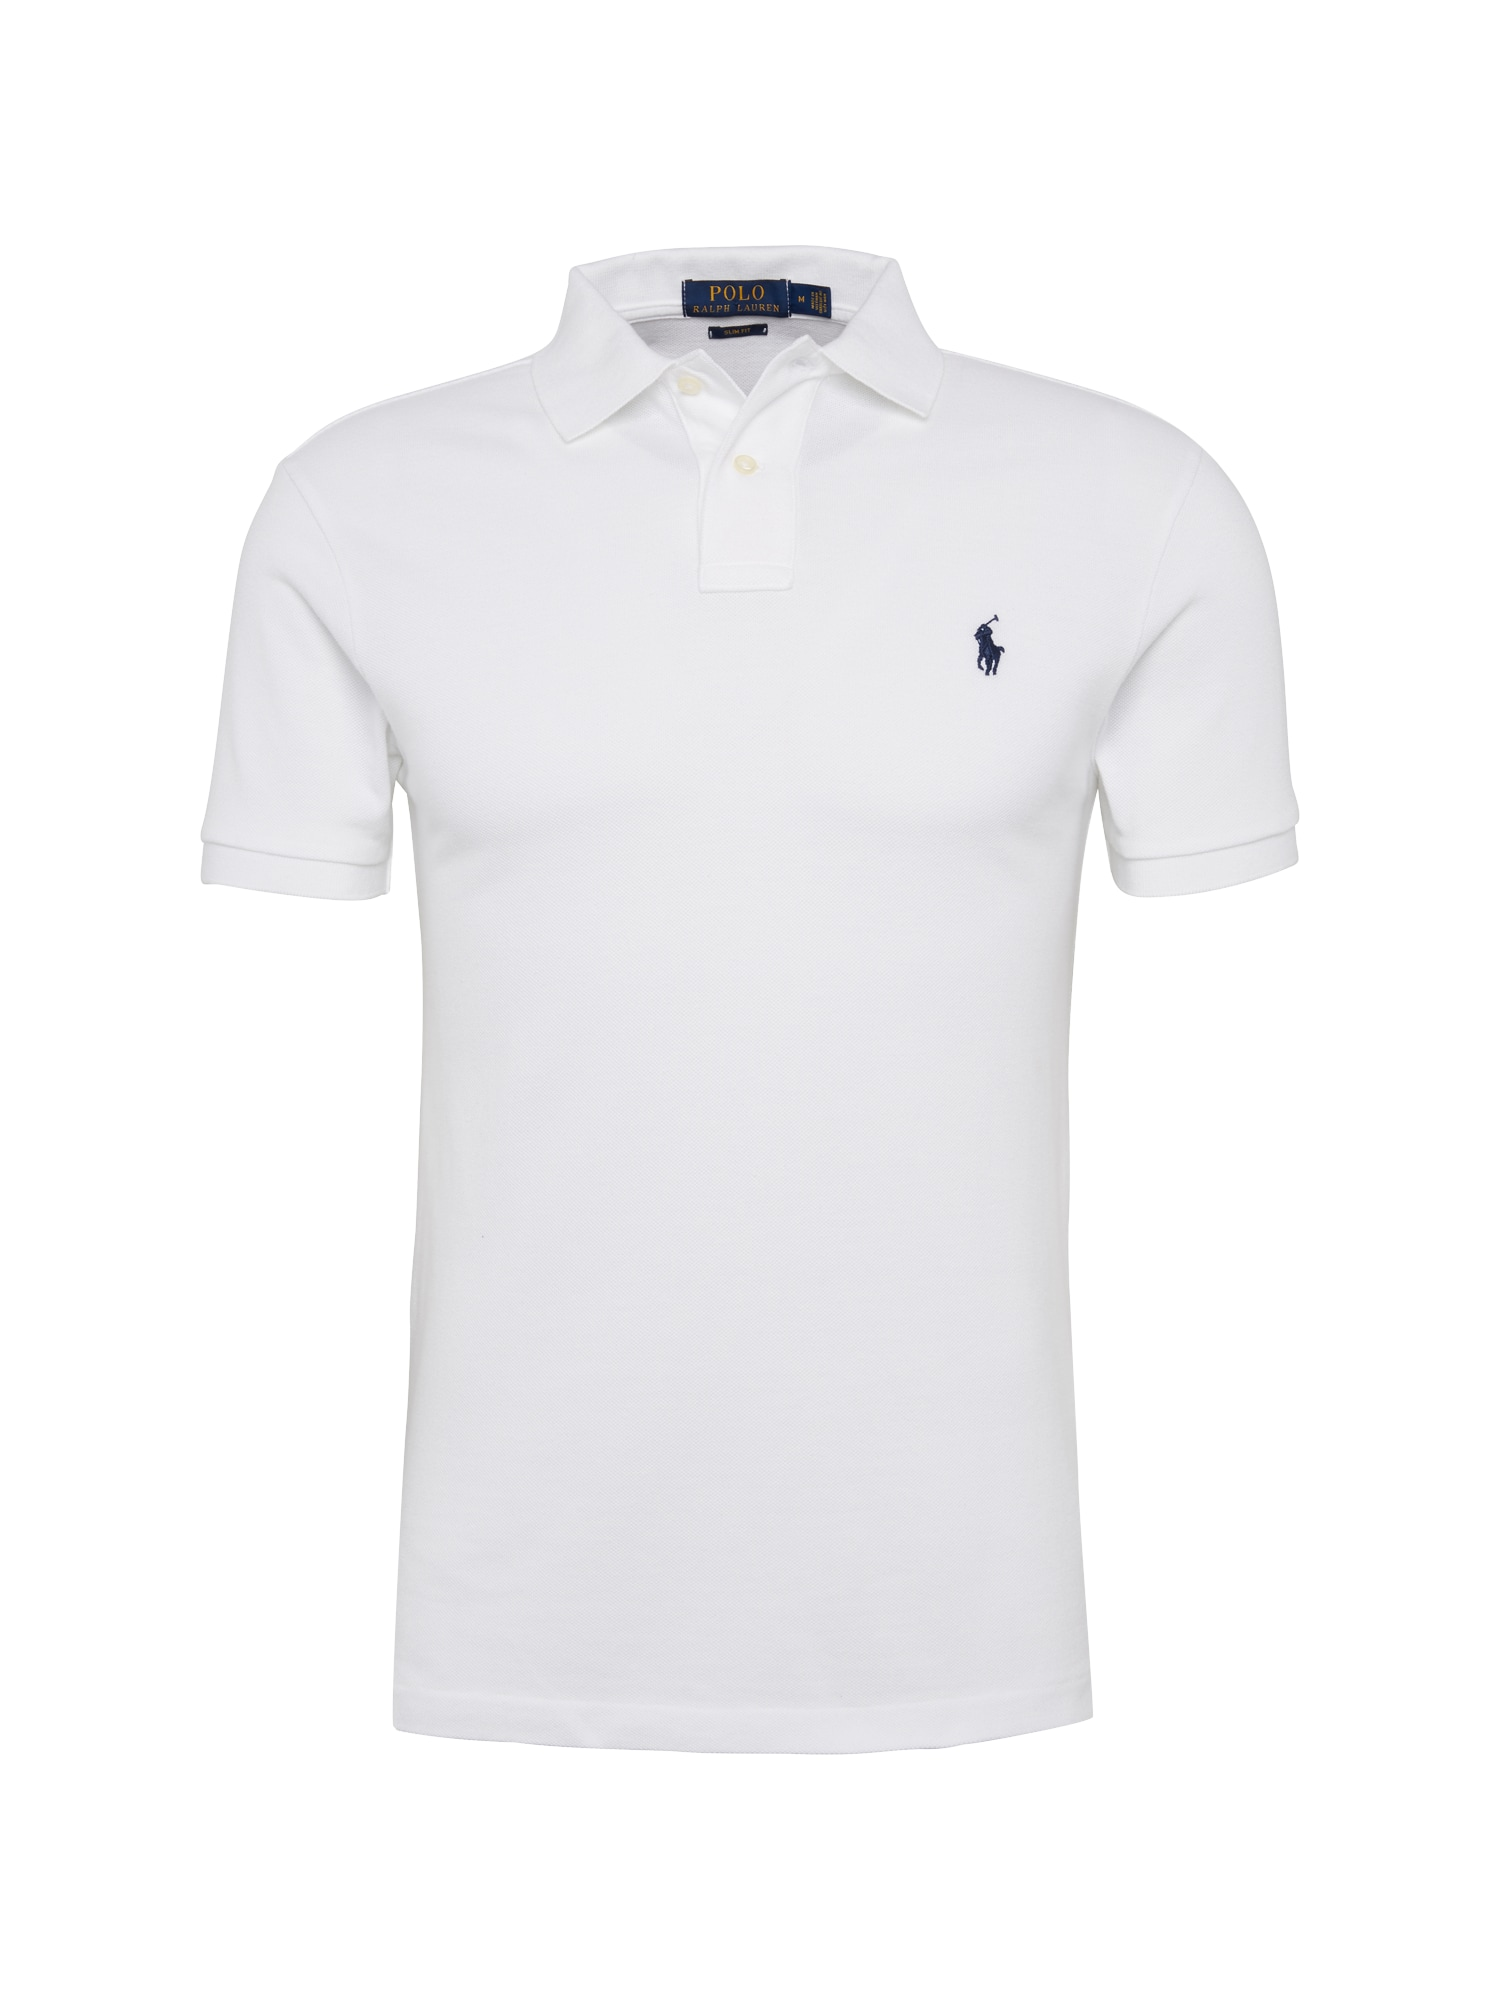 Tričko SS SLIM FIT-SHORT SLEEVE-KNIT bílá POLO RALPH LAUREN